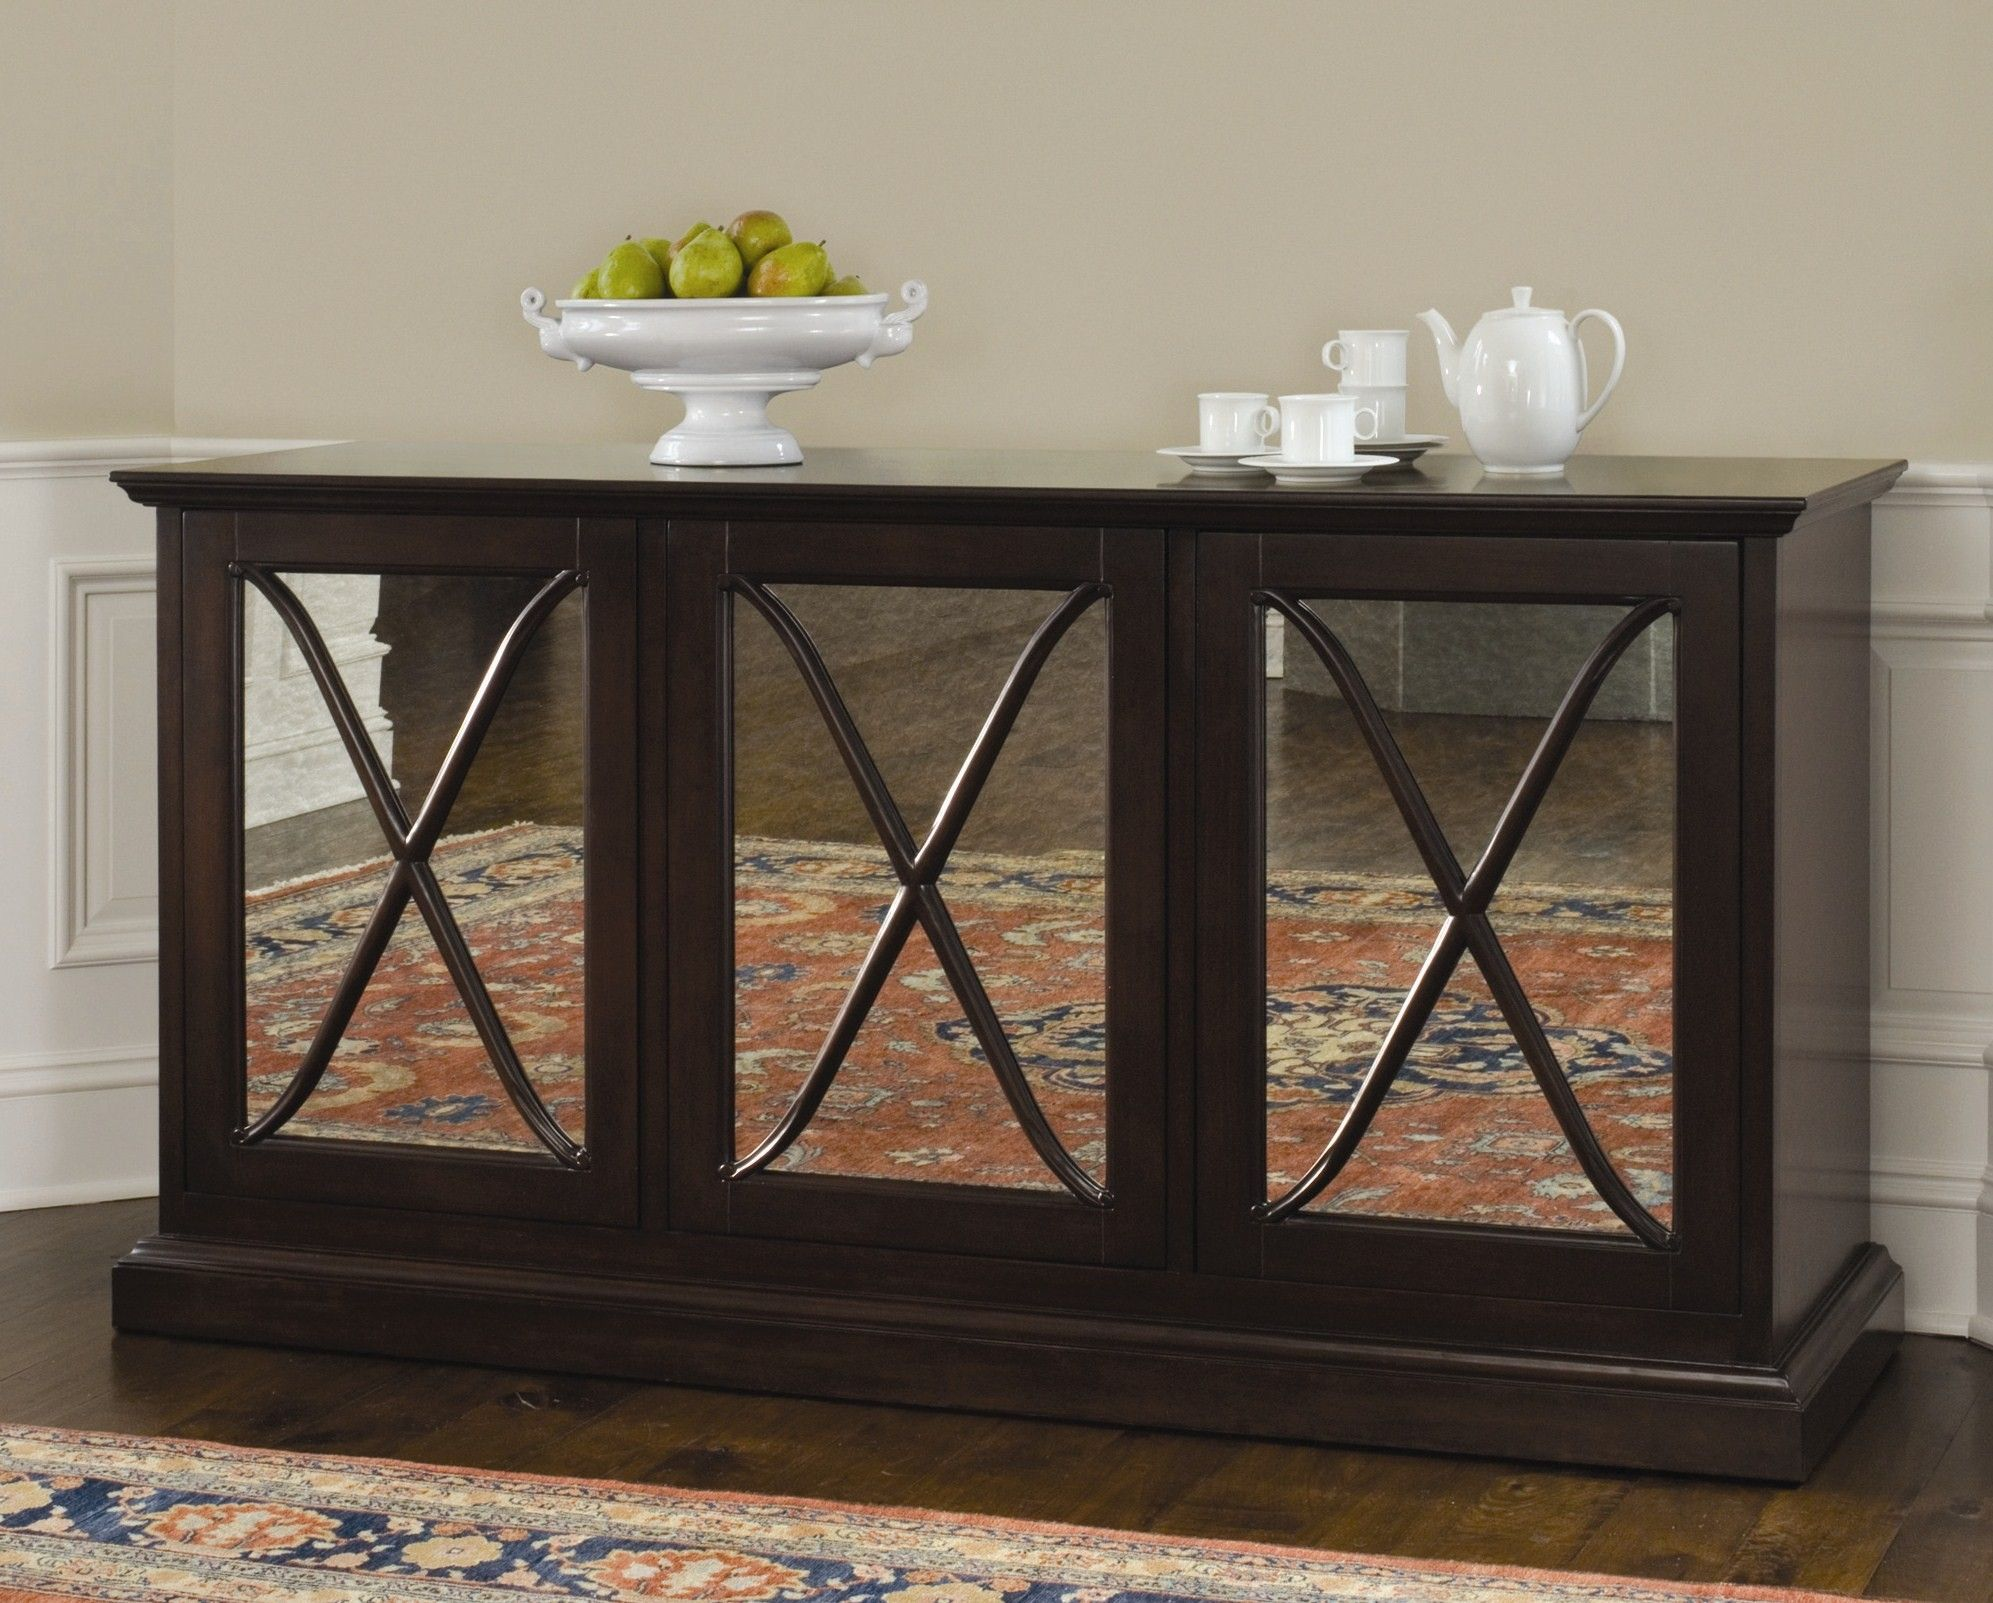 Dining room furniture buffet - Luxury Mirrored Modern Buffet Table With Triple Door Added Dark Brown Painted Also Modern Living Rugs